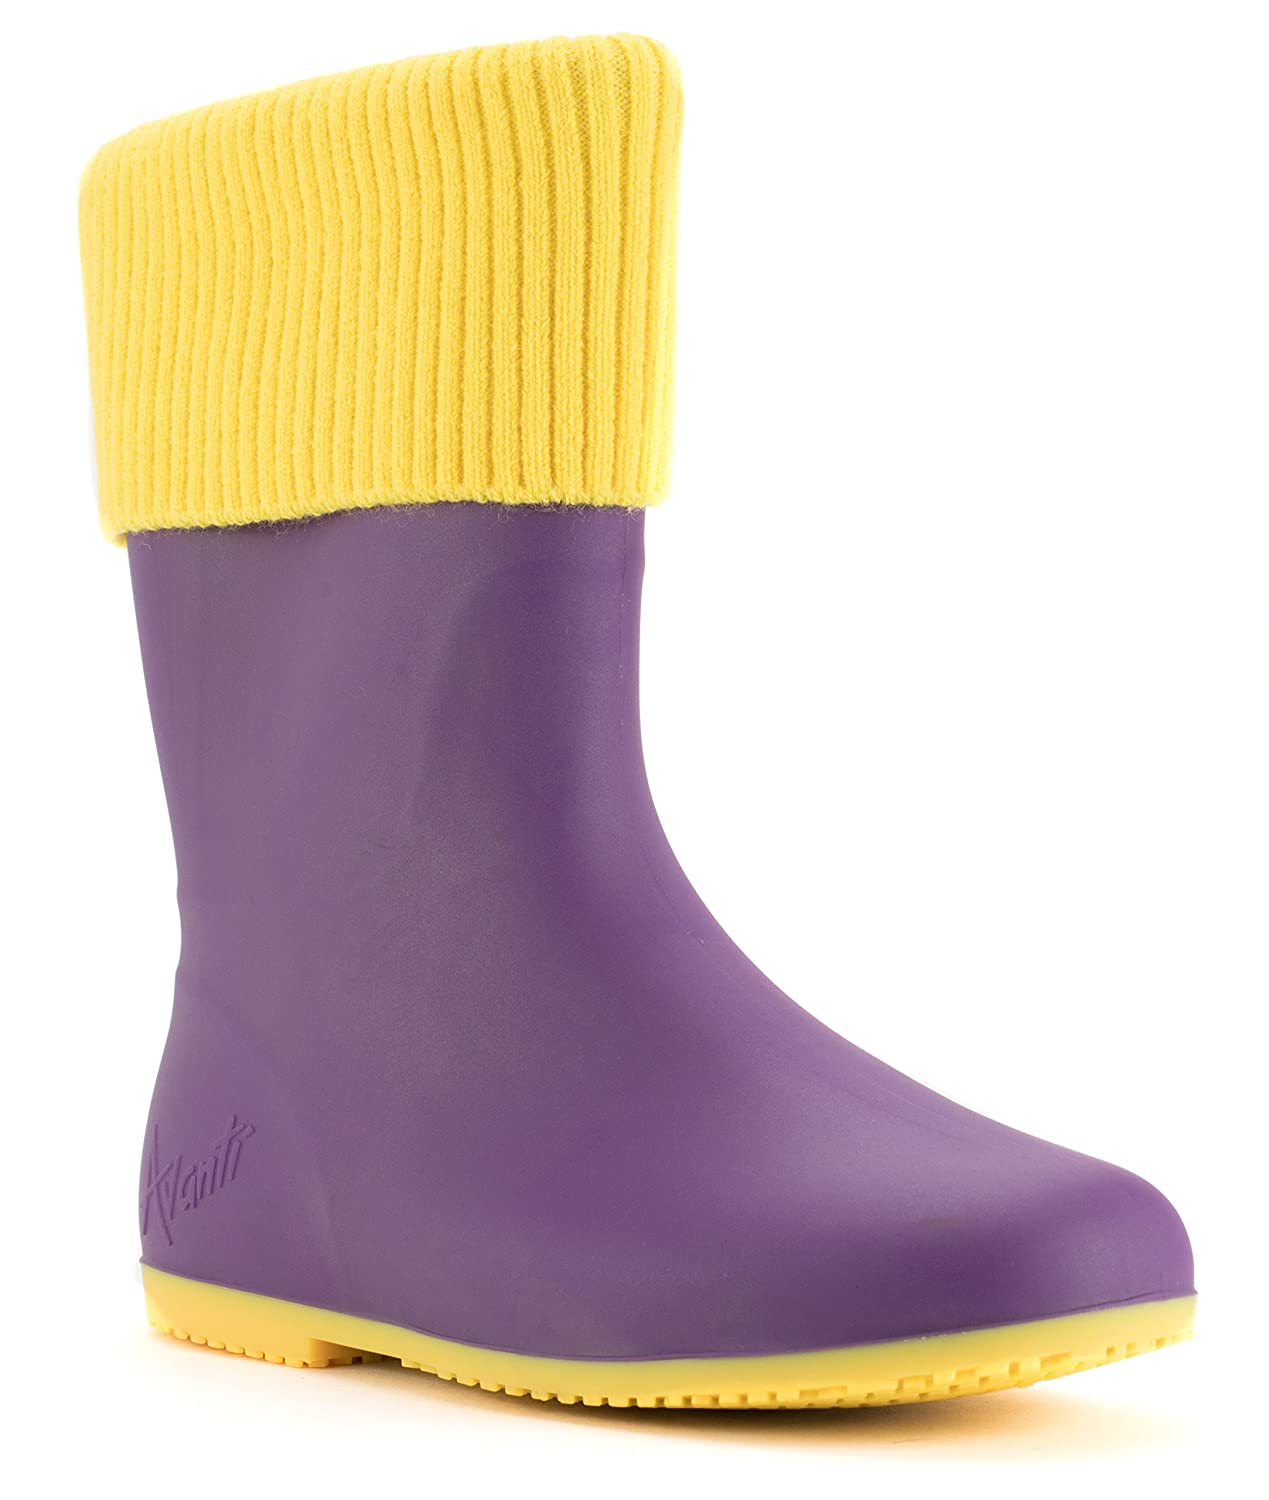 Avanti Storm Rain Boot Waterproof With Removable Knitted Cuff Monogram-Able Foldable B078SYBX79 6 B(M) US|Purple and Yellow